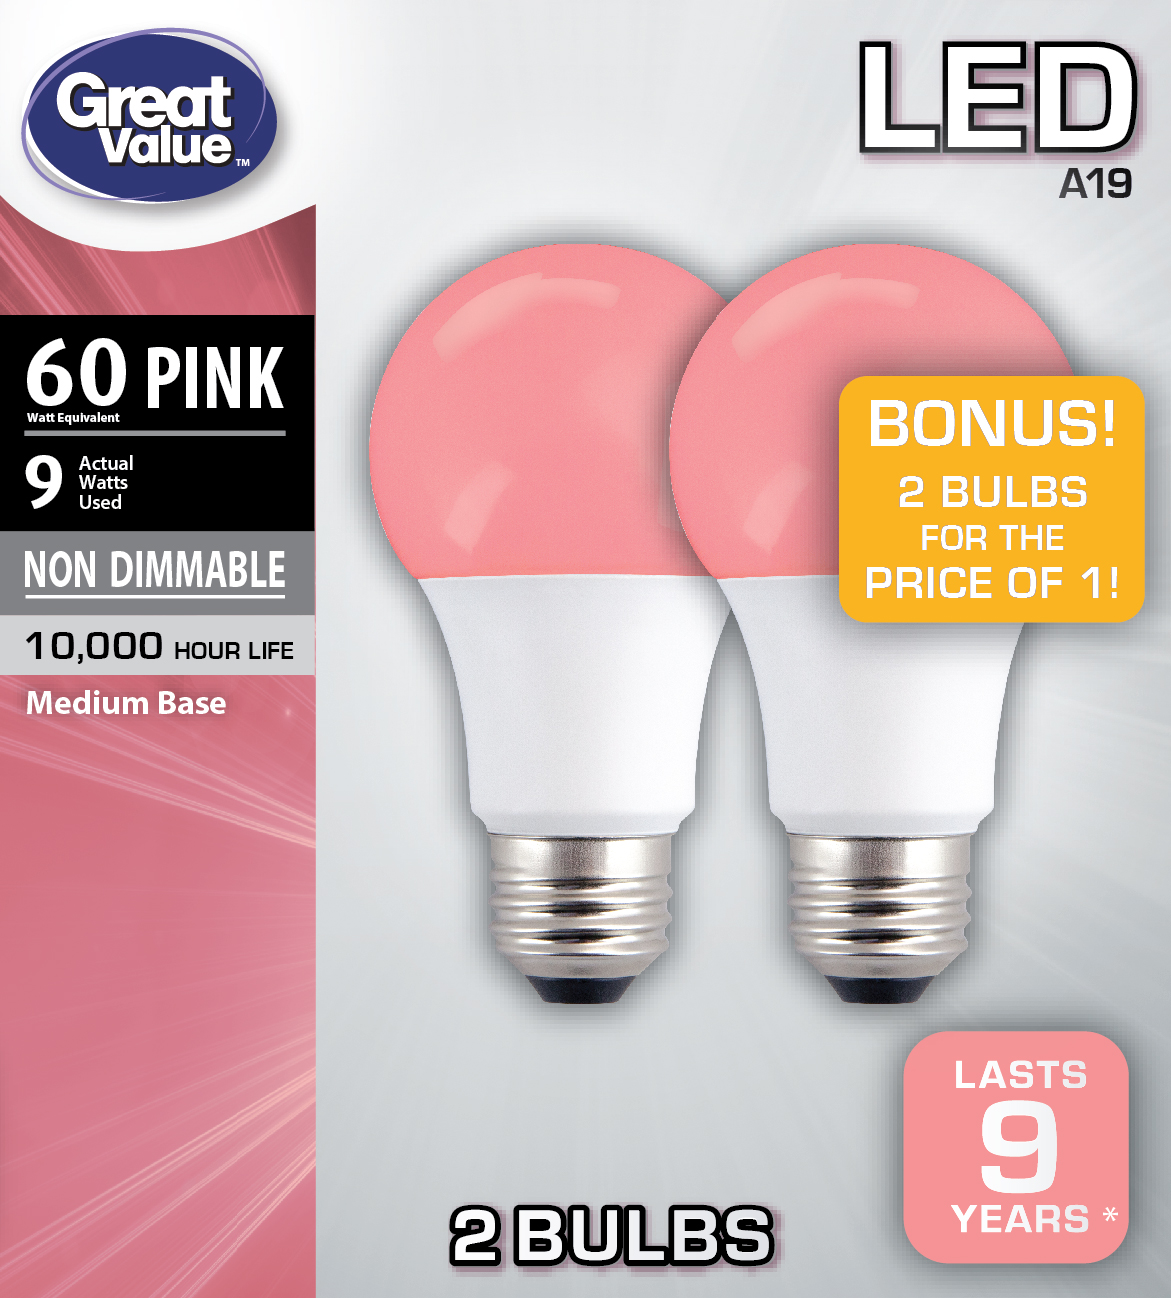 Great Value LED A19 (E26) Light Bulbs, 9W (60W Equivalent), Pink, 2-Pack